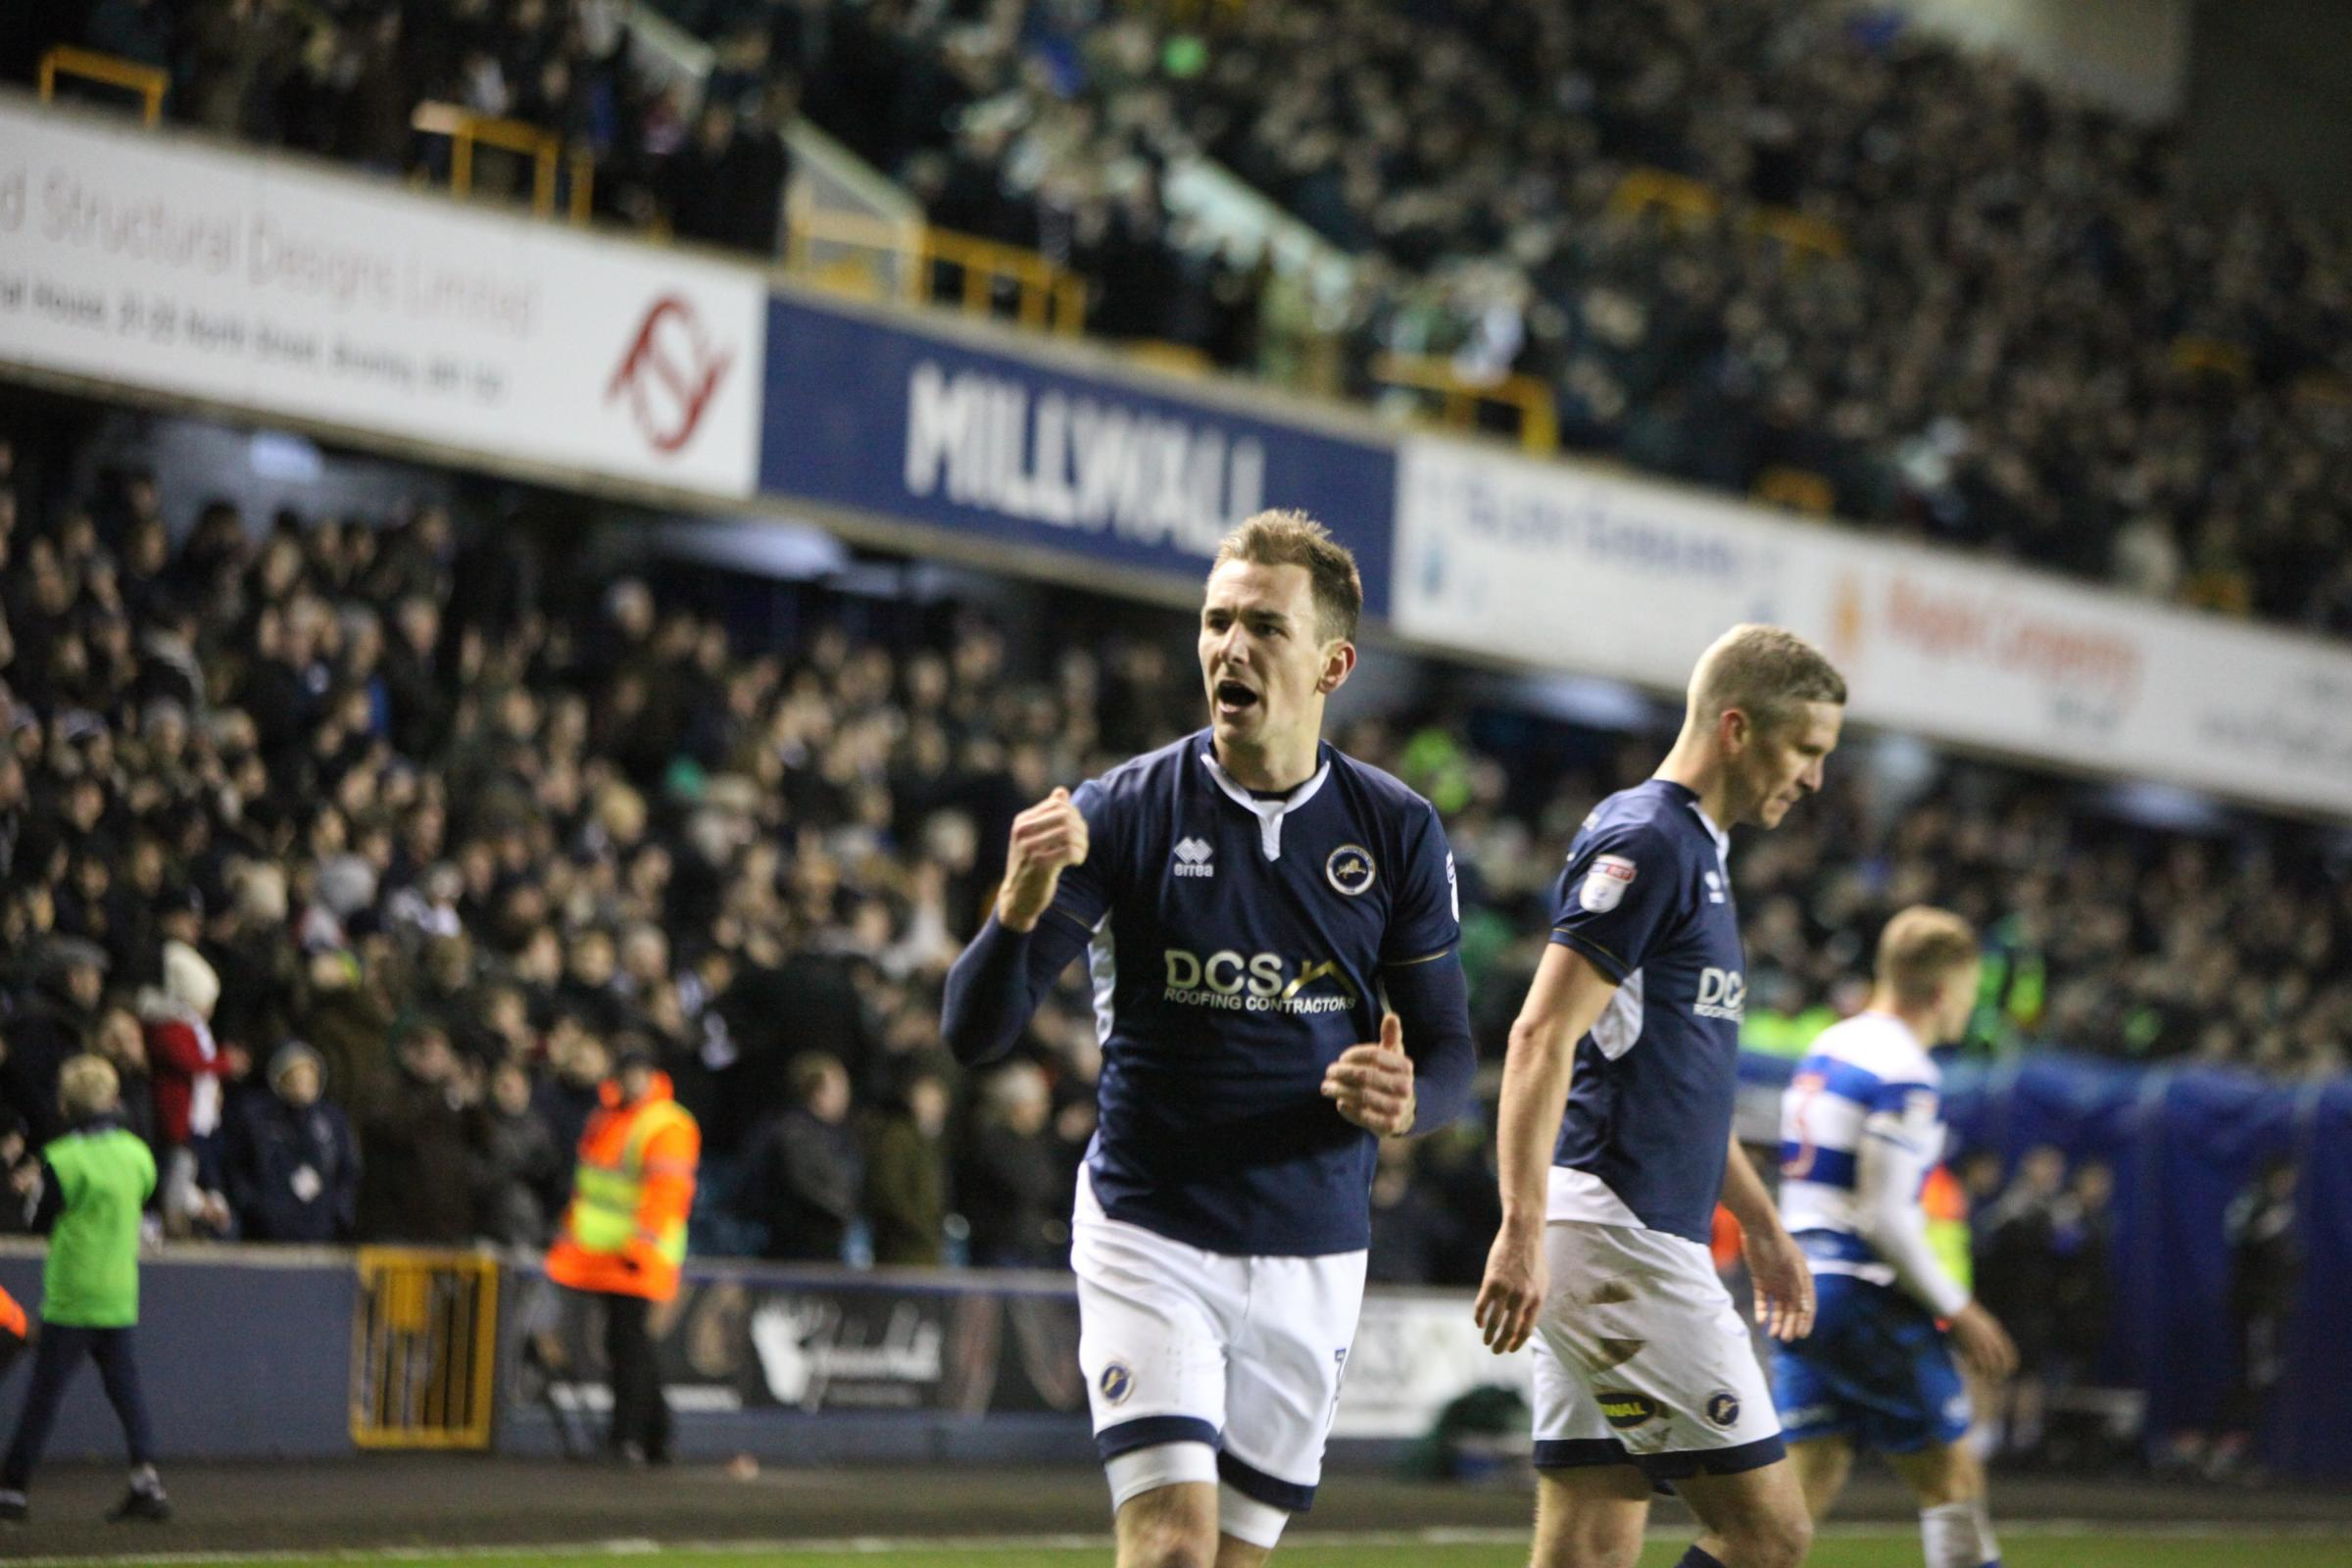 Jed Wallace celebrates as Millwall defeat QPR 1-0. Photo: Tom West Photography